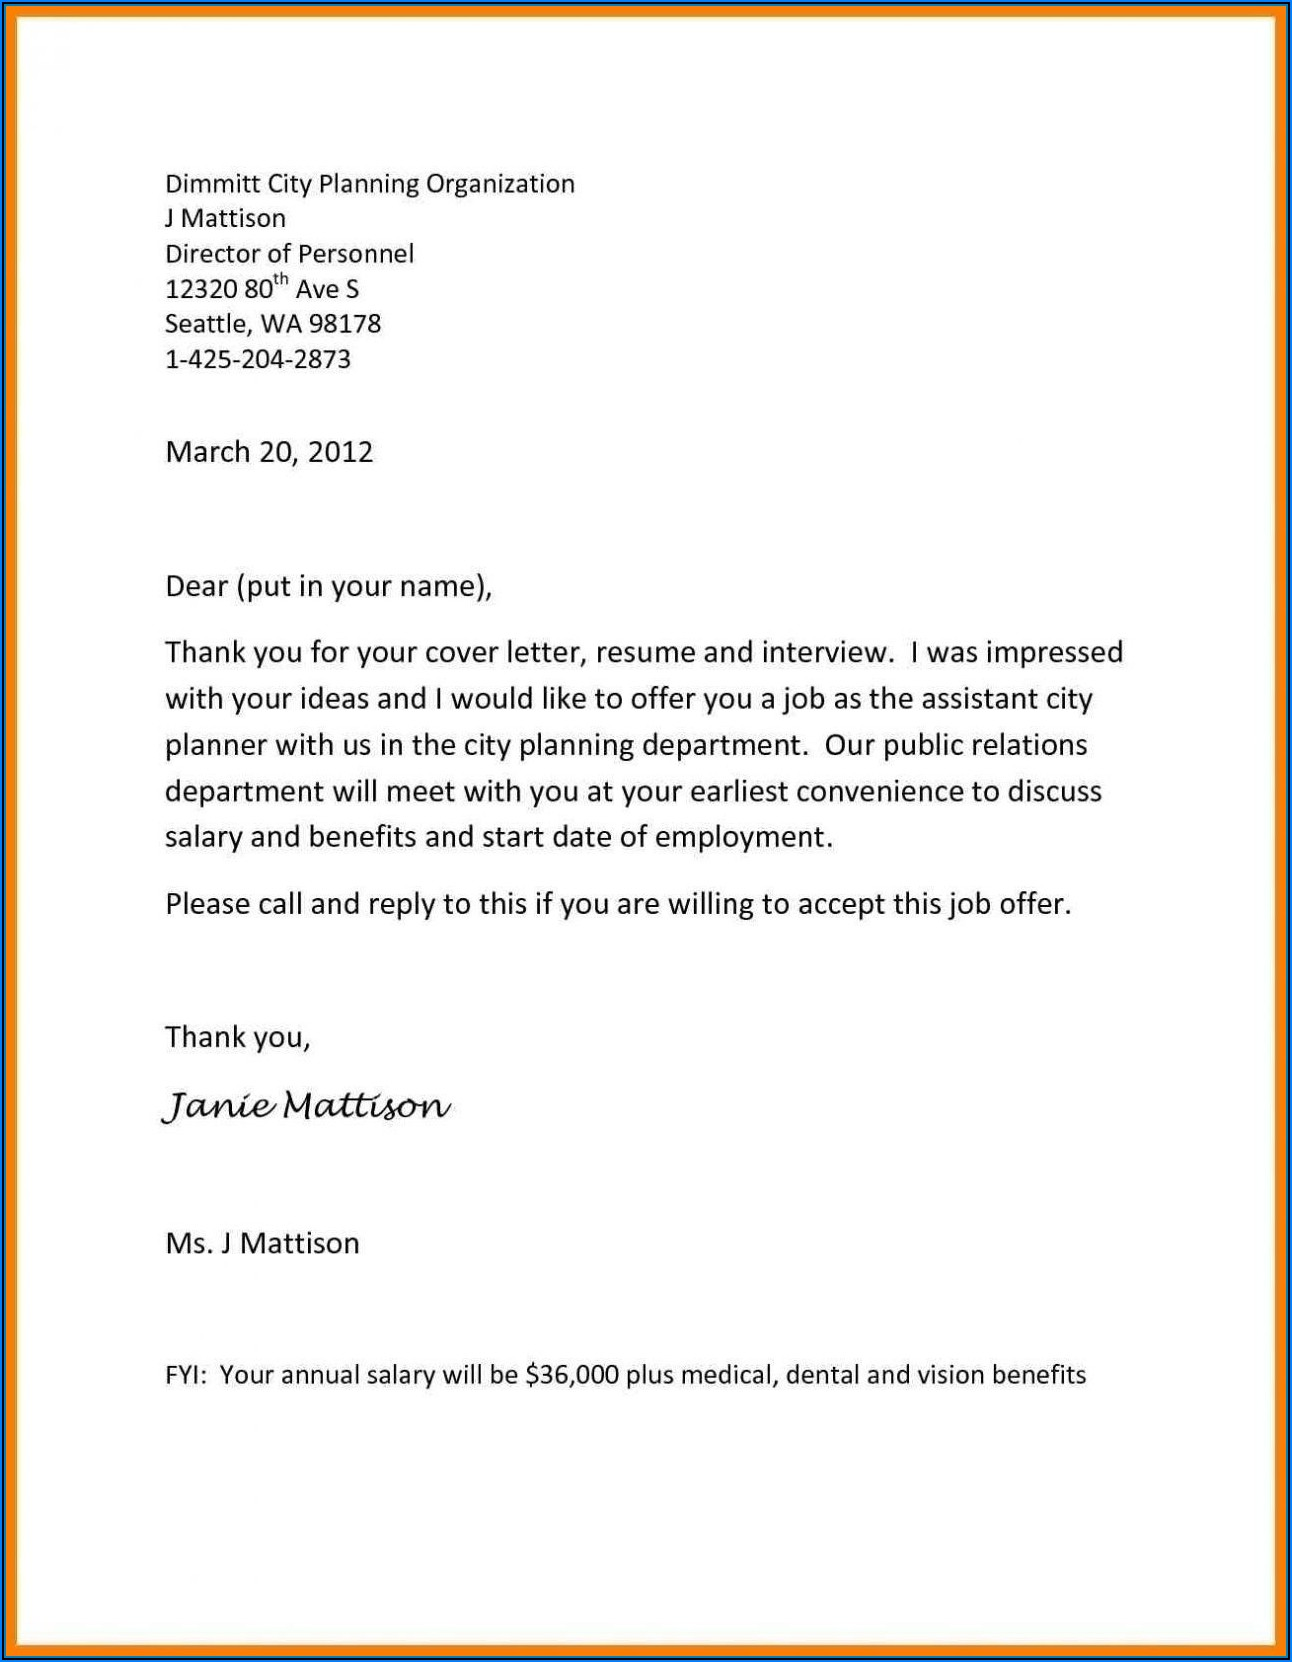 Job Offer Letter Template Free